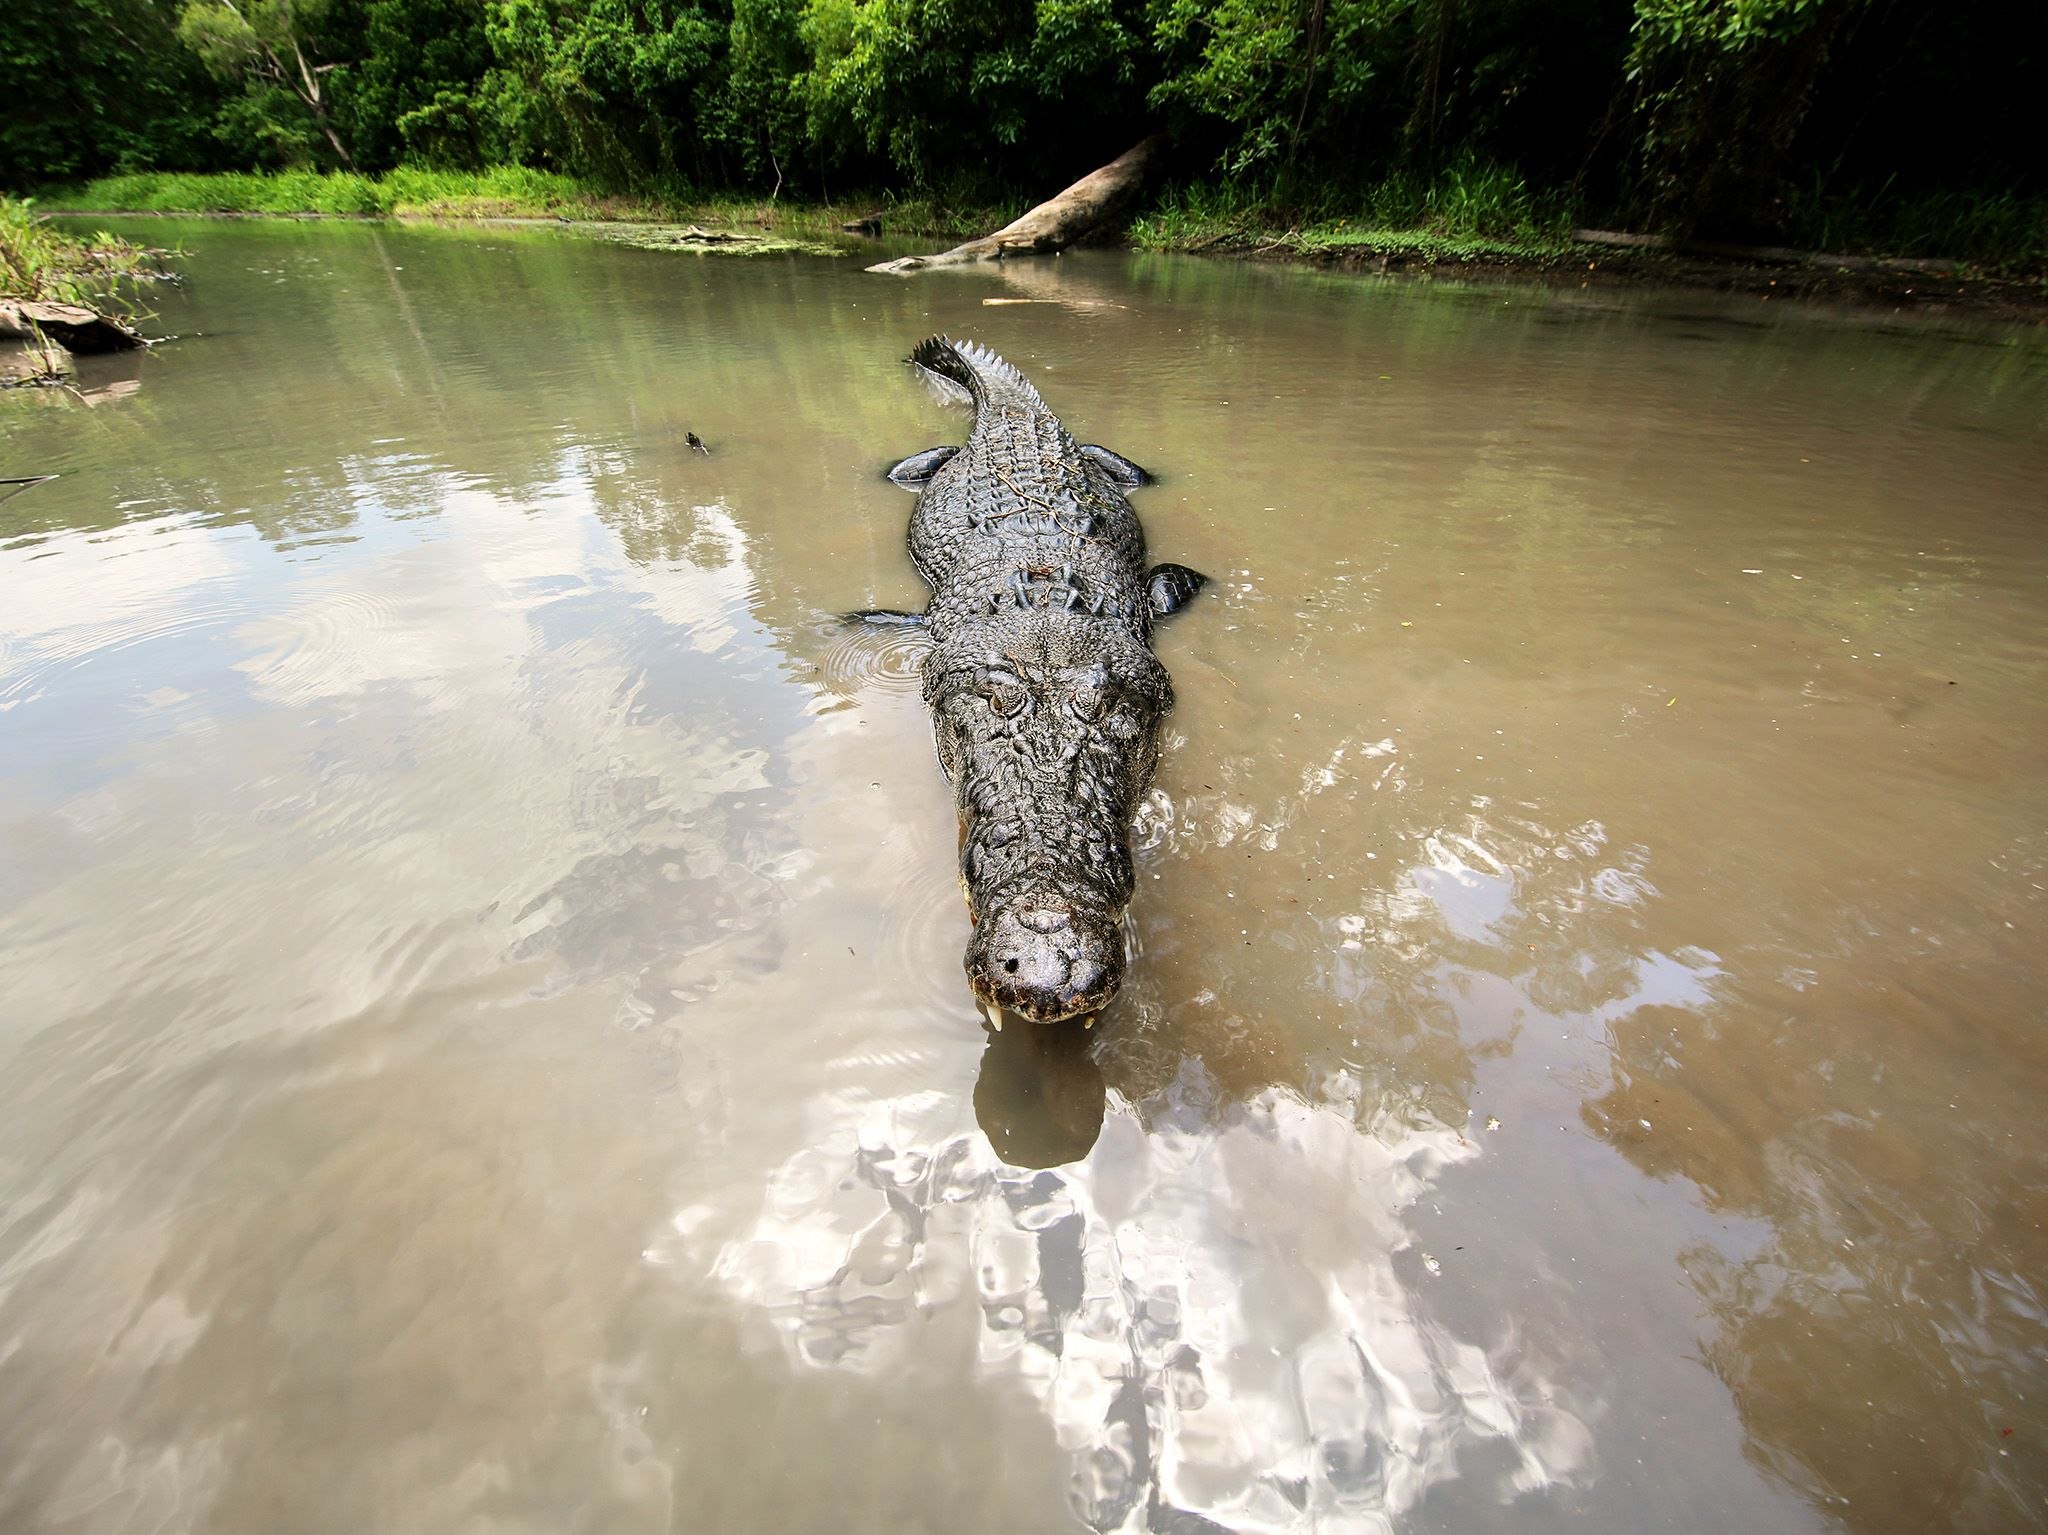 Northern Territory, Australia:  An Australian Saltwater Crocodile. This image is from Monster... [Foto del giorno - gennaio 2018]